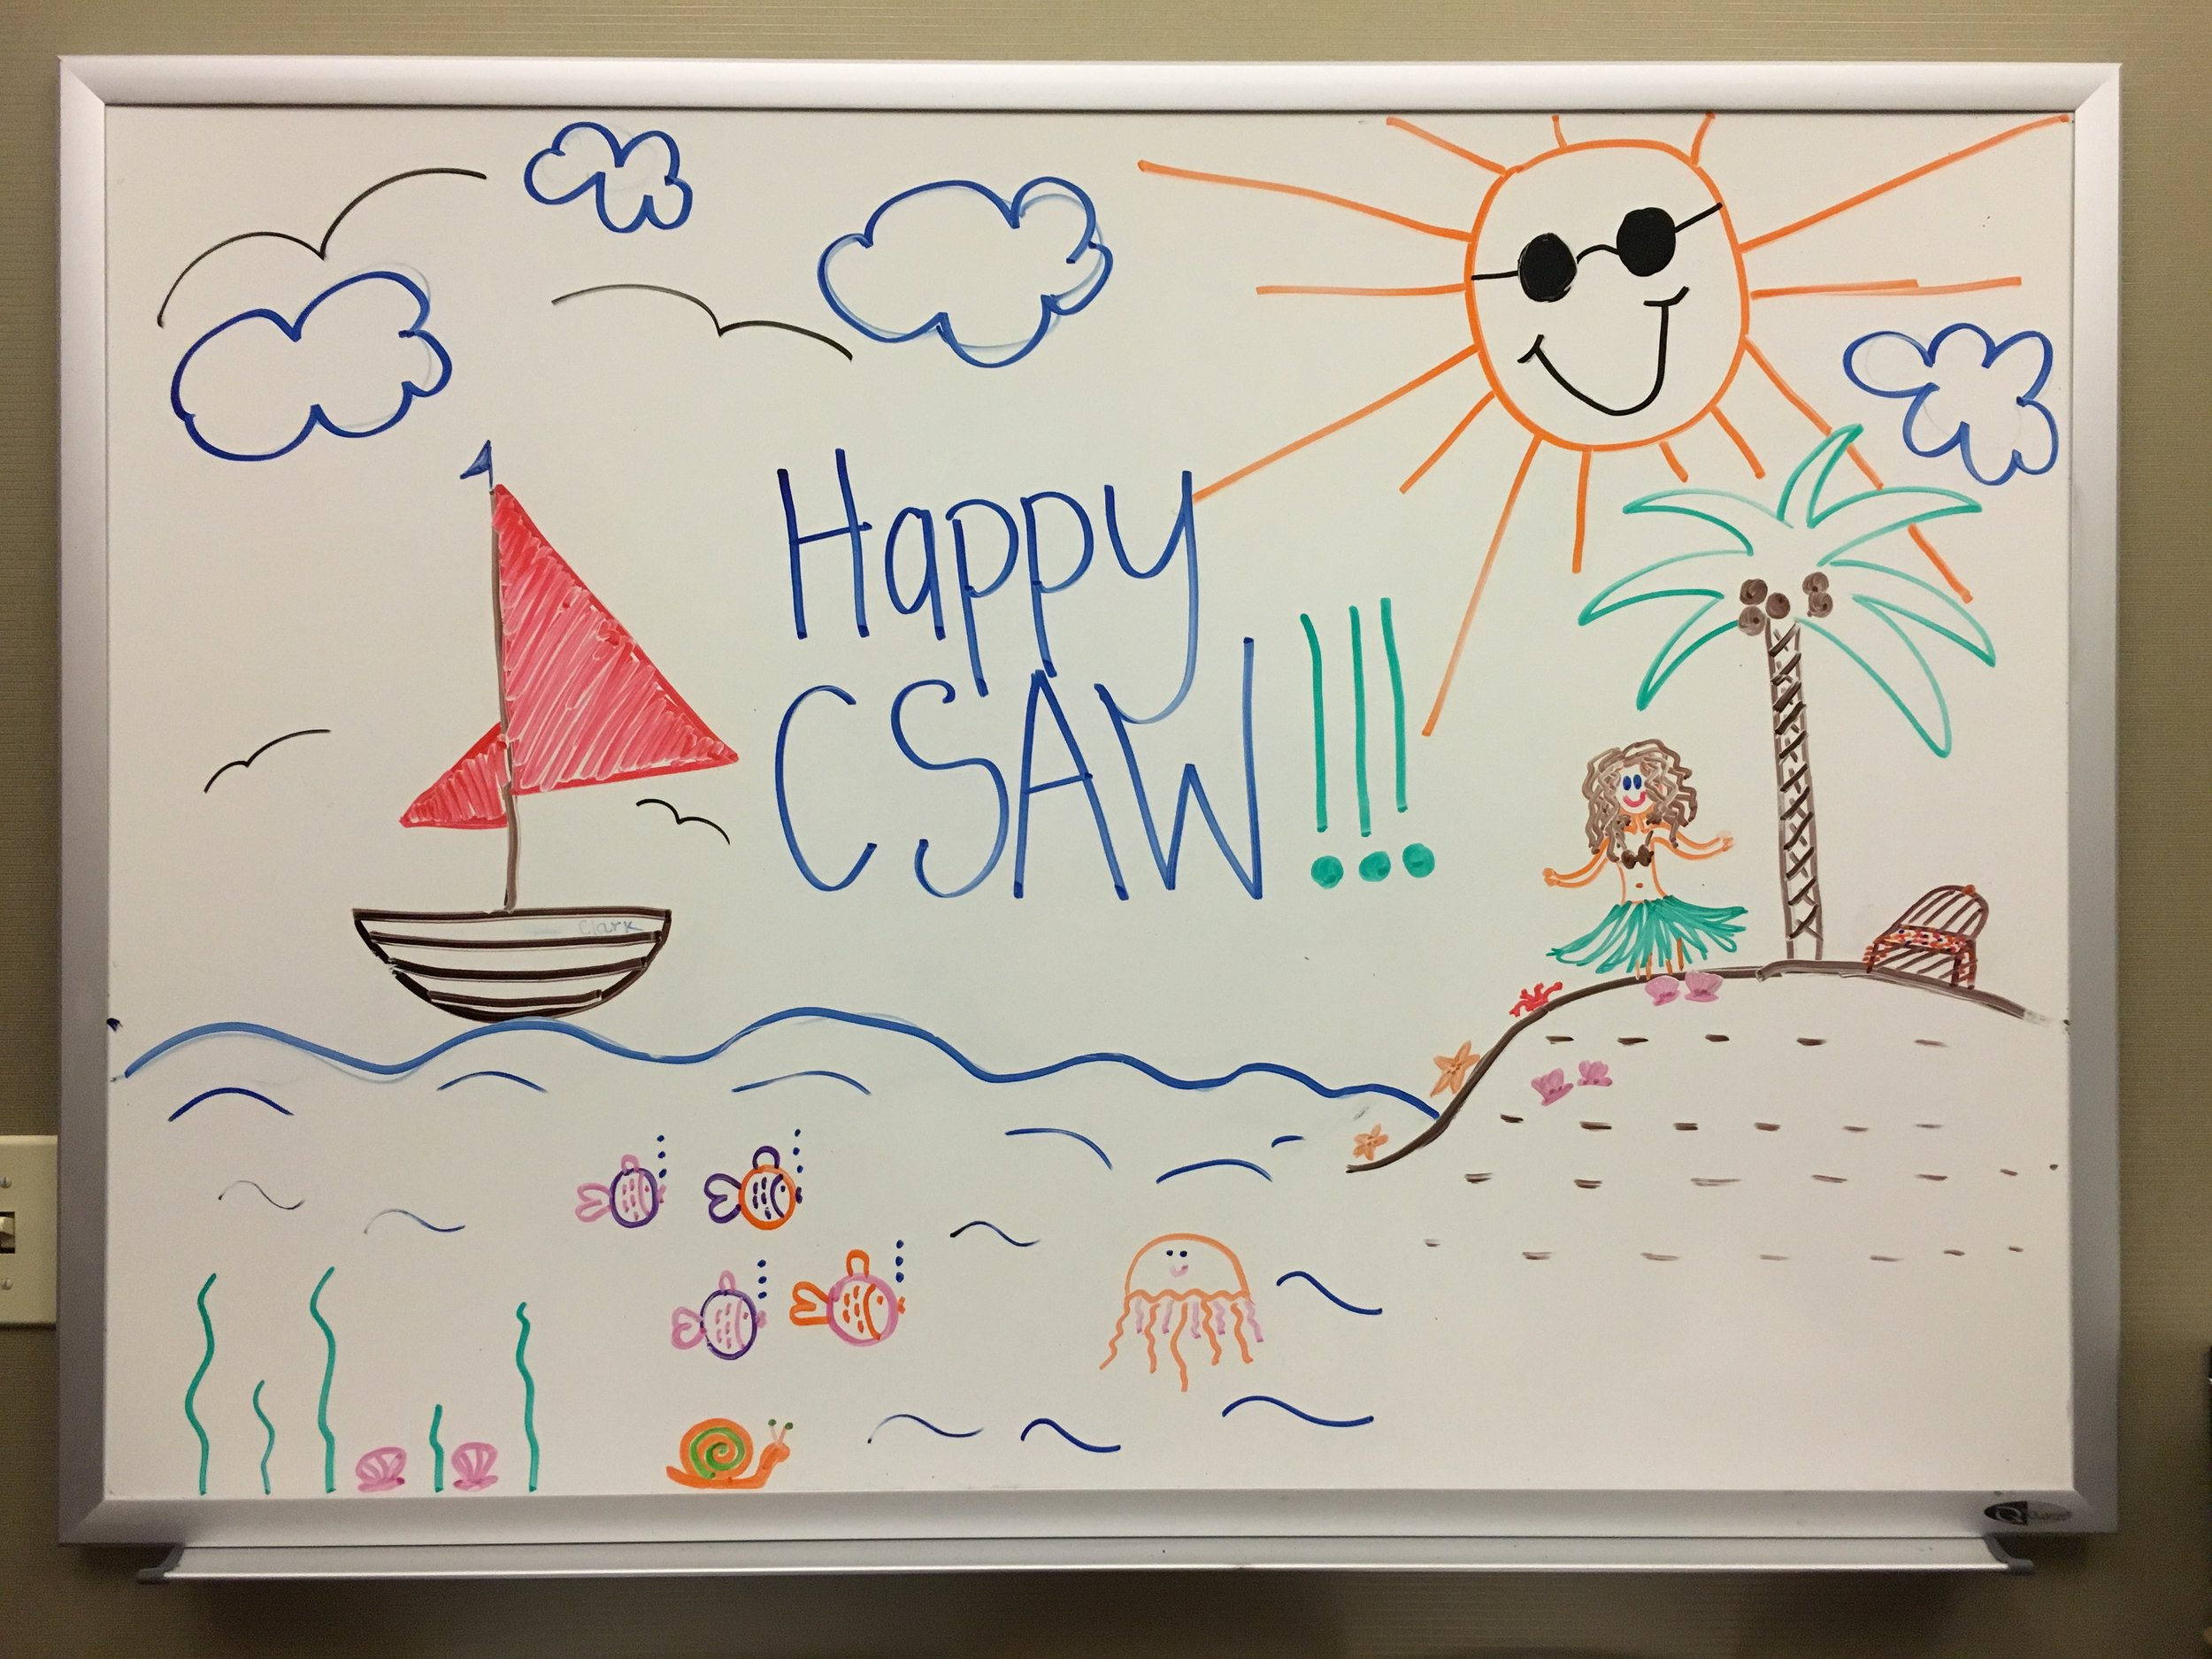 I work with some very talented whiteboard artists!